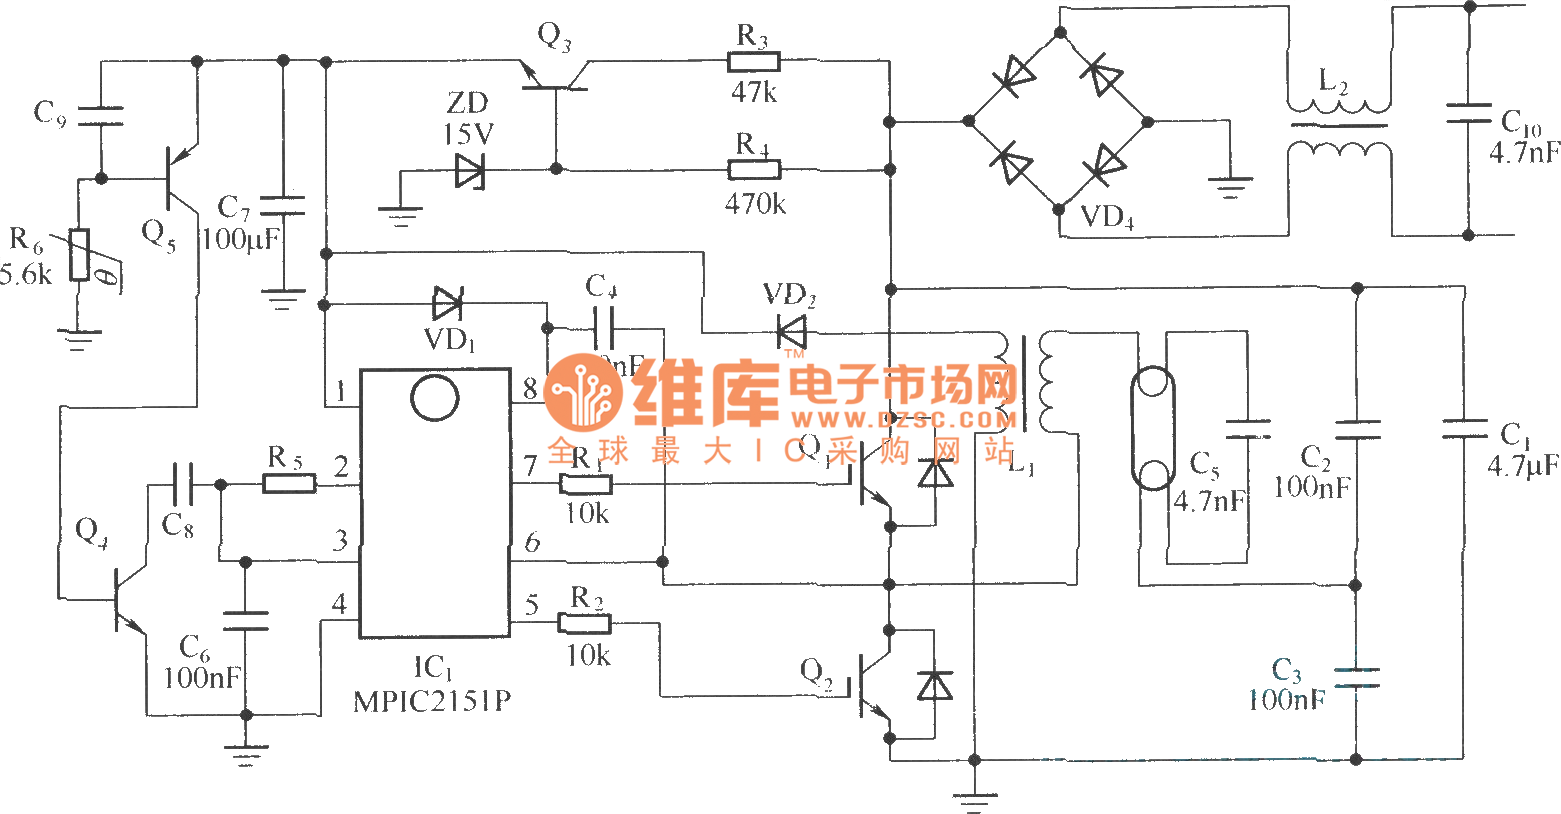 Cfl Electron Ballast Circuit Composed Of Mpic2151p And